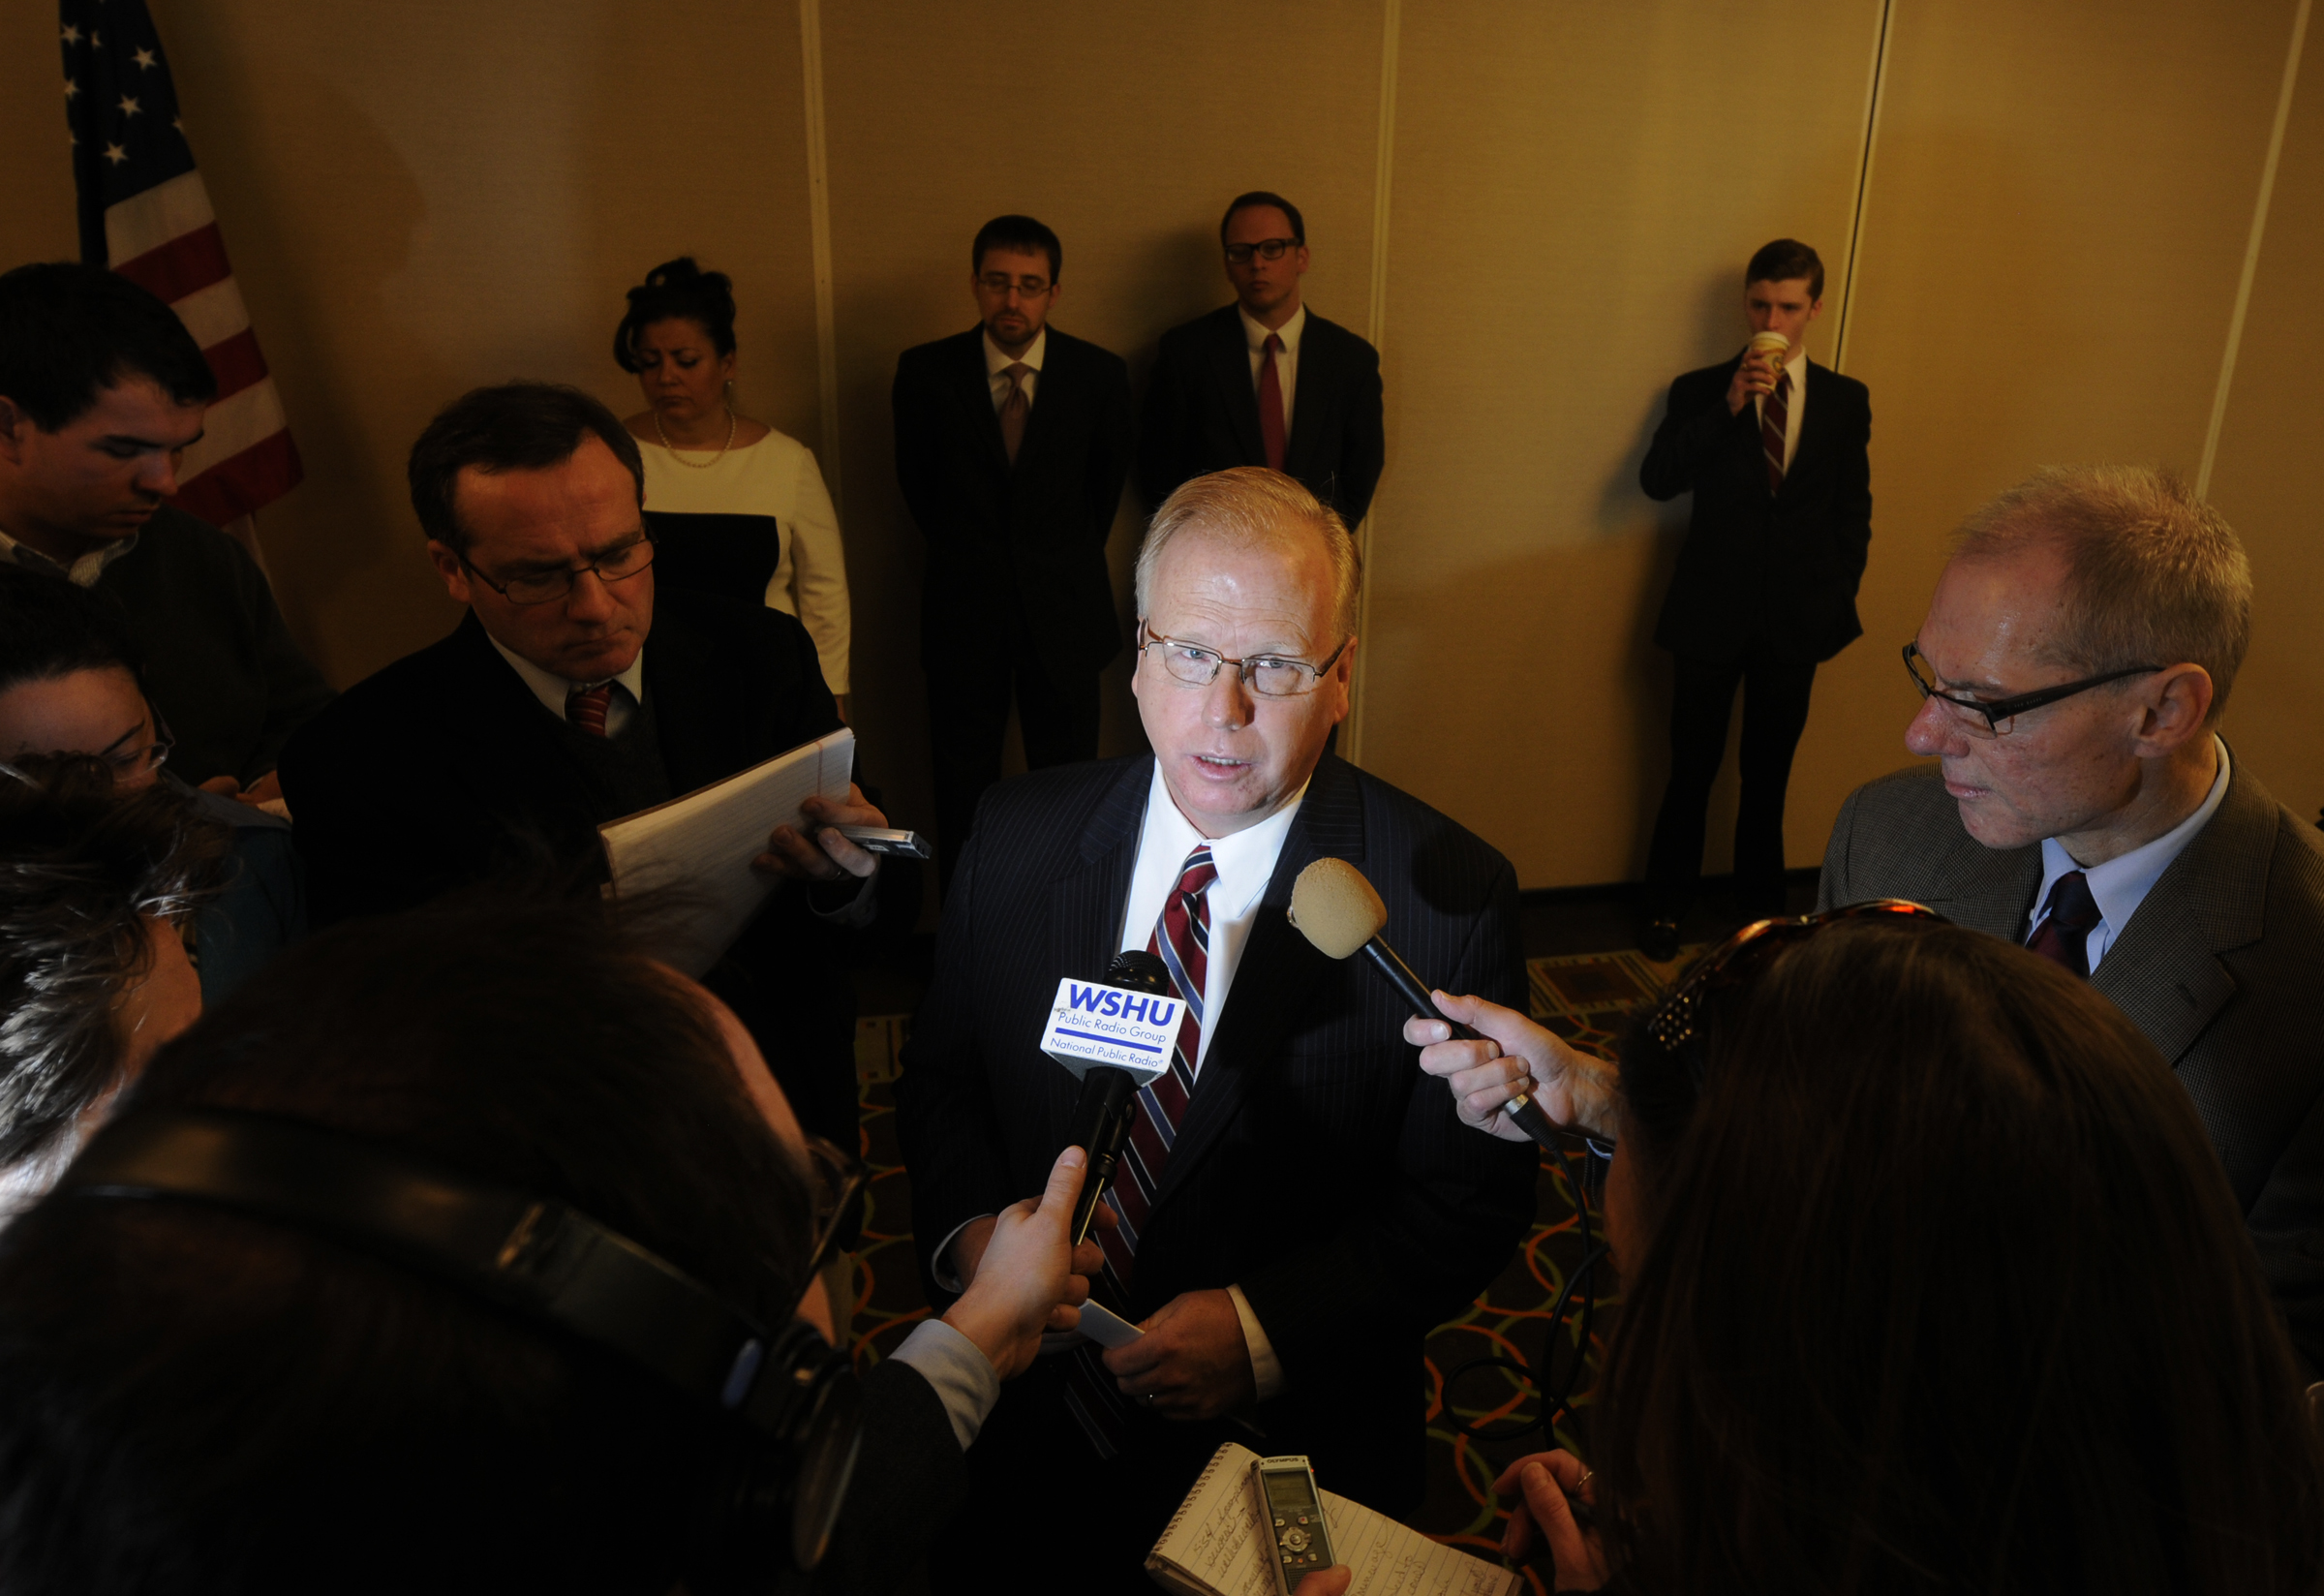 Danbury Mayor Mark Boughton announced Wednesday that he is running for governor. He speaks with the Connecticut media after he made his declaration.